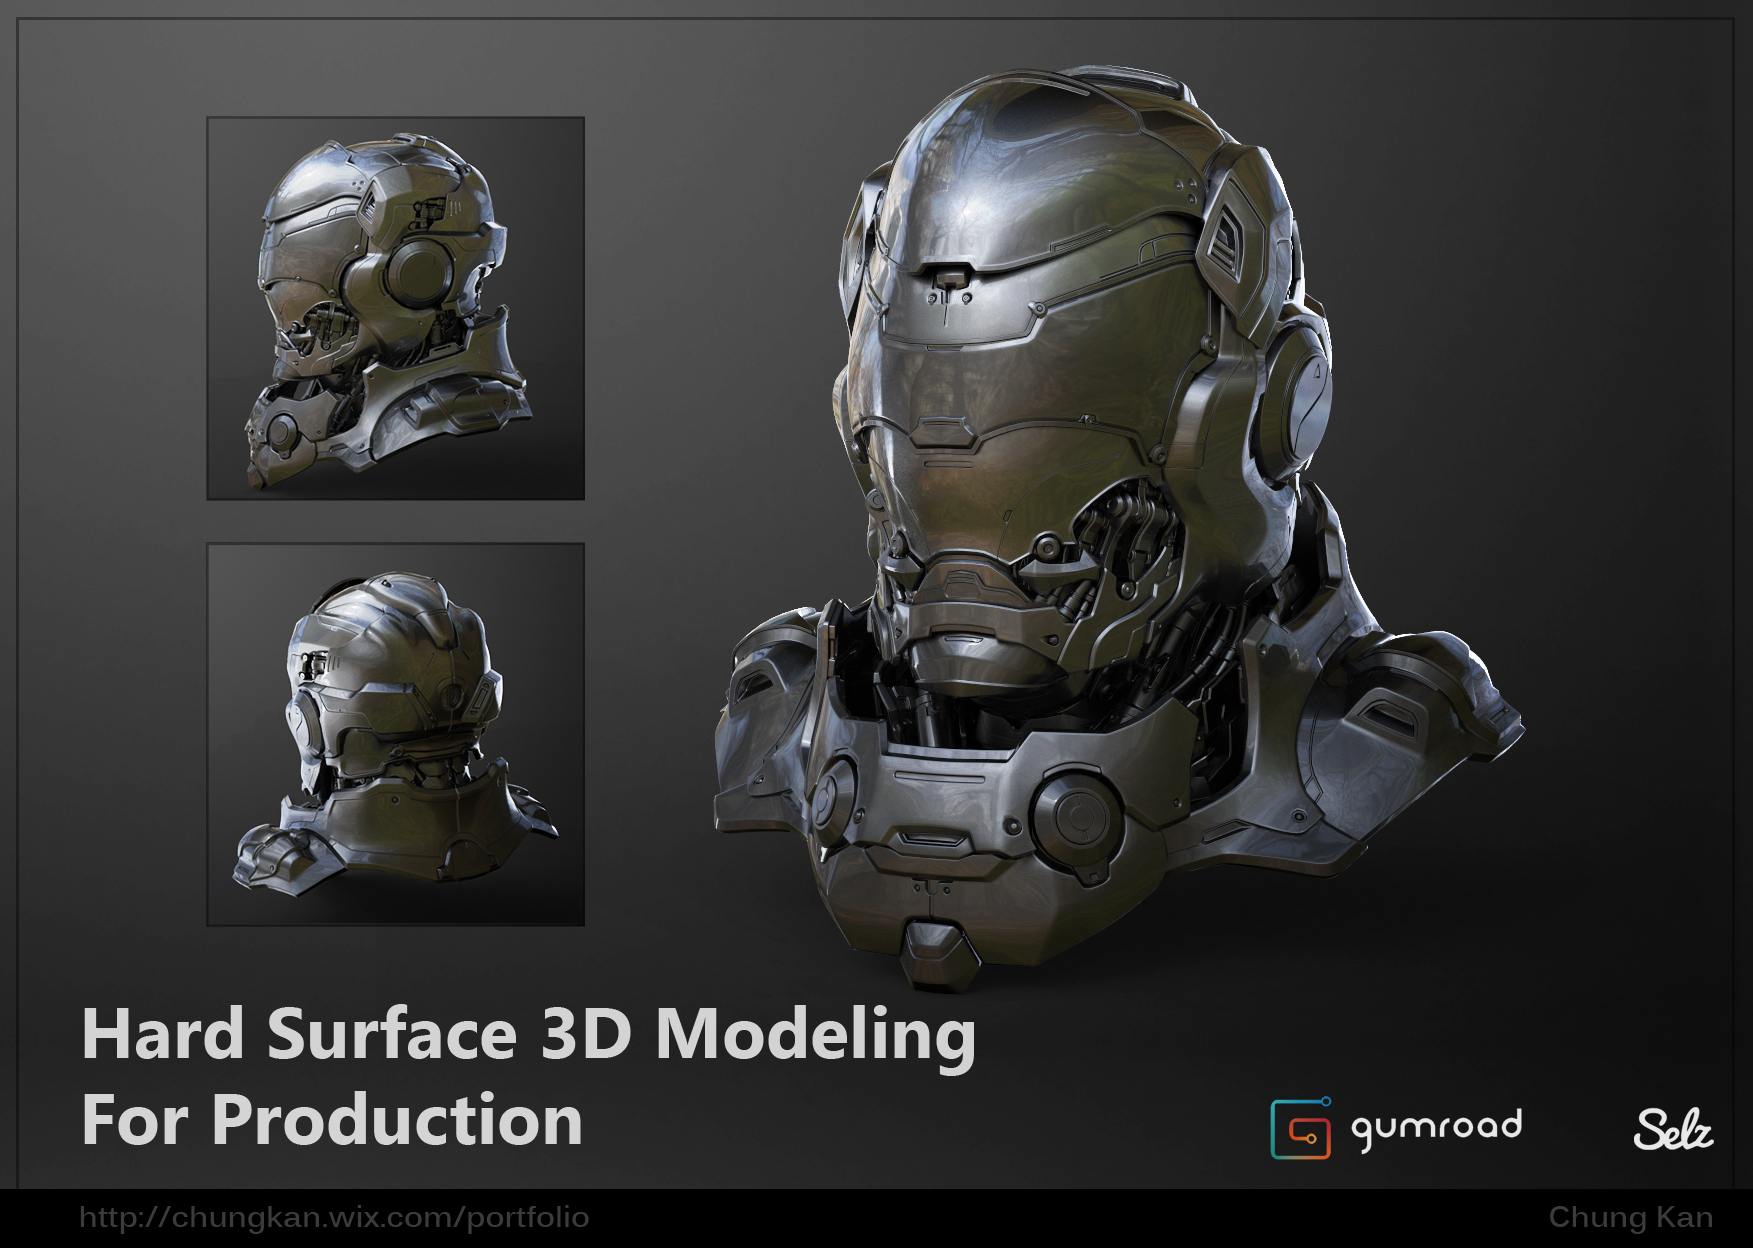 hard_surface_3d_modeling_for_production_by_chungkan3d-d8gp7ca.jpg